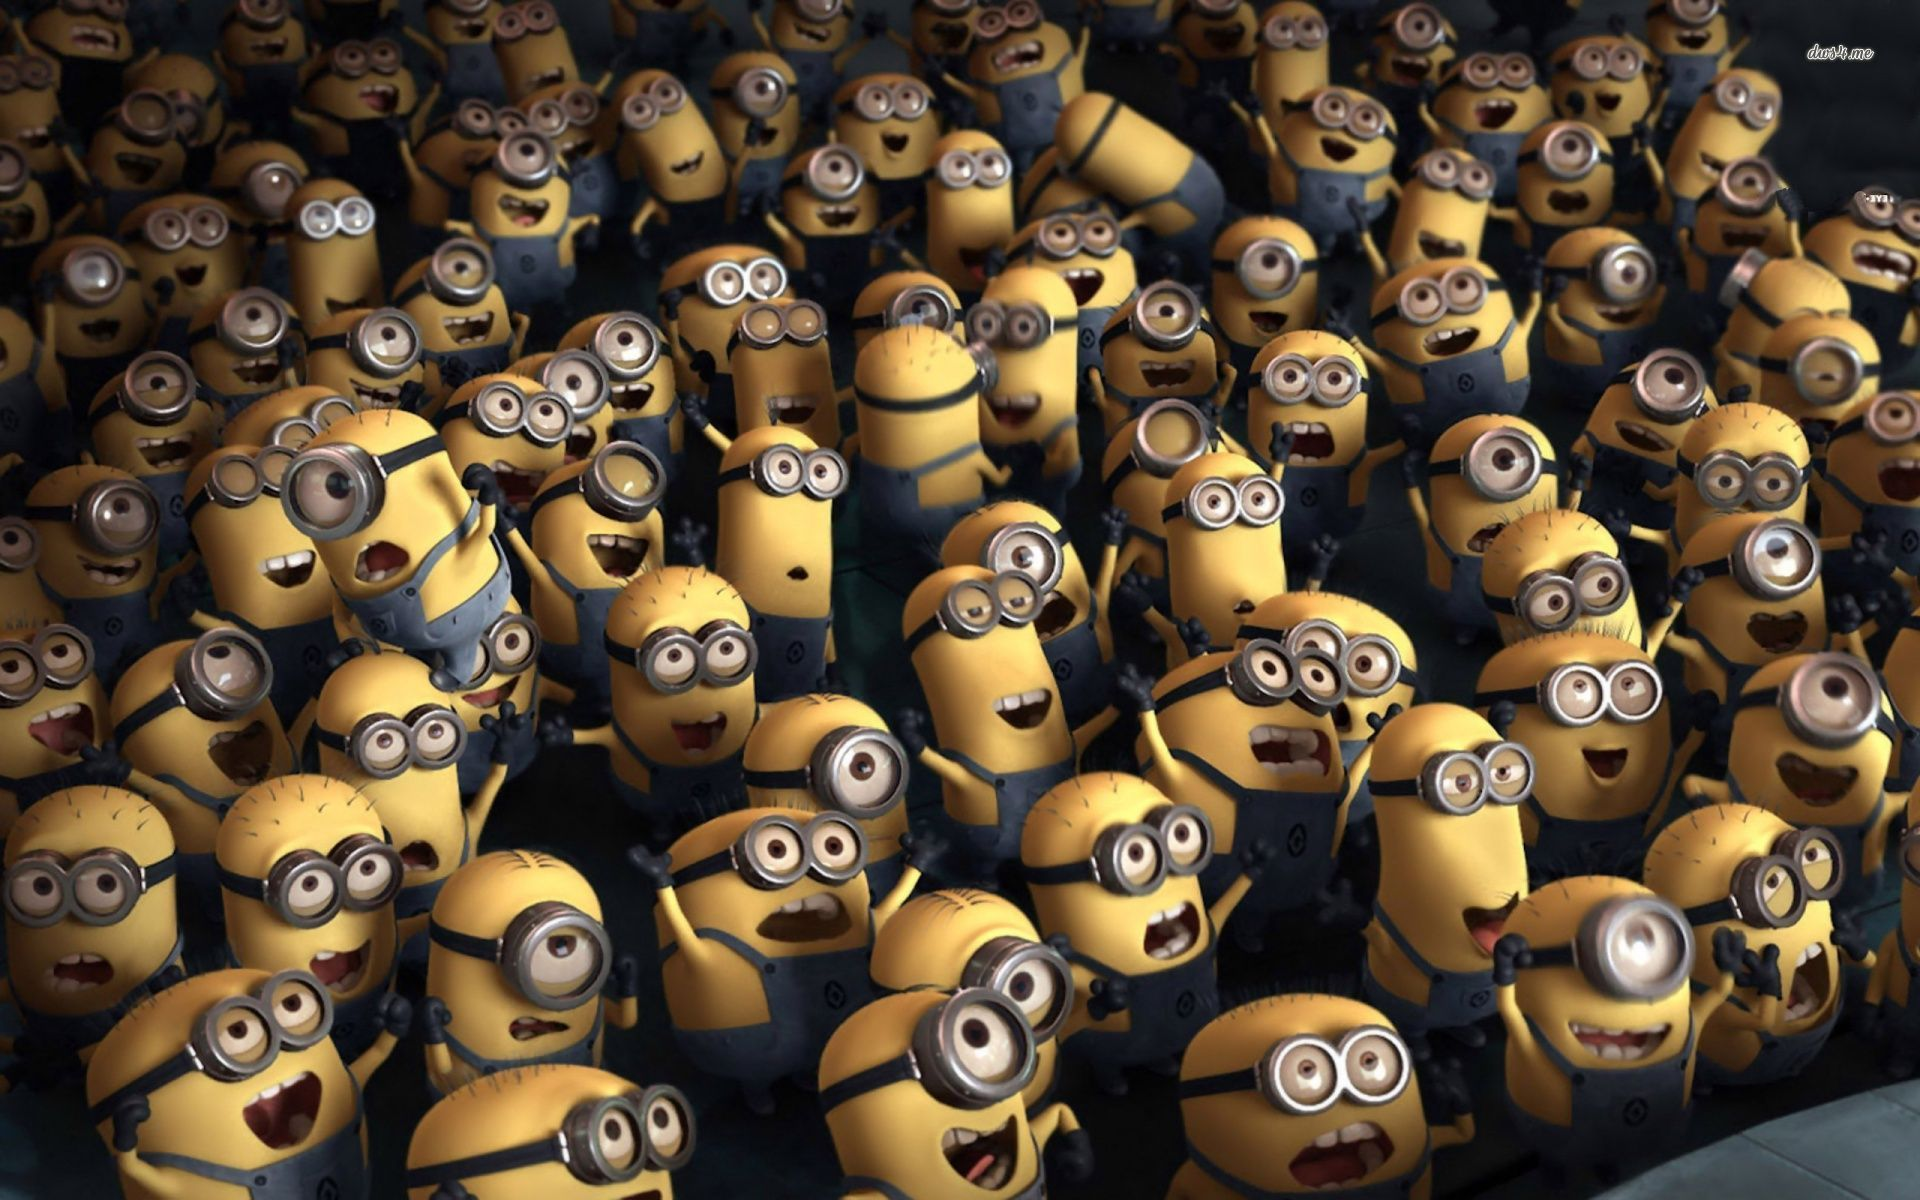 Best despicable me 2 minions wallpaper collection - Despicable me minion screensaver ...